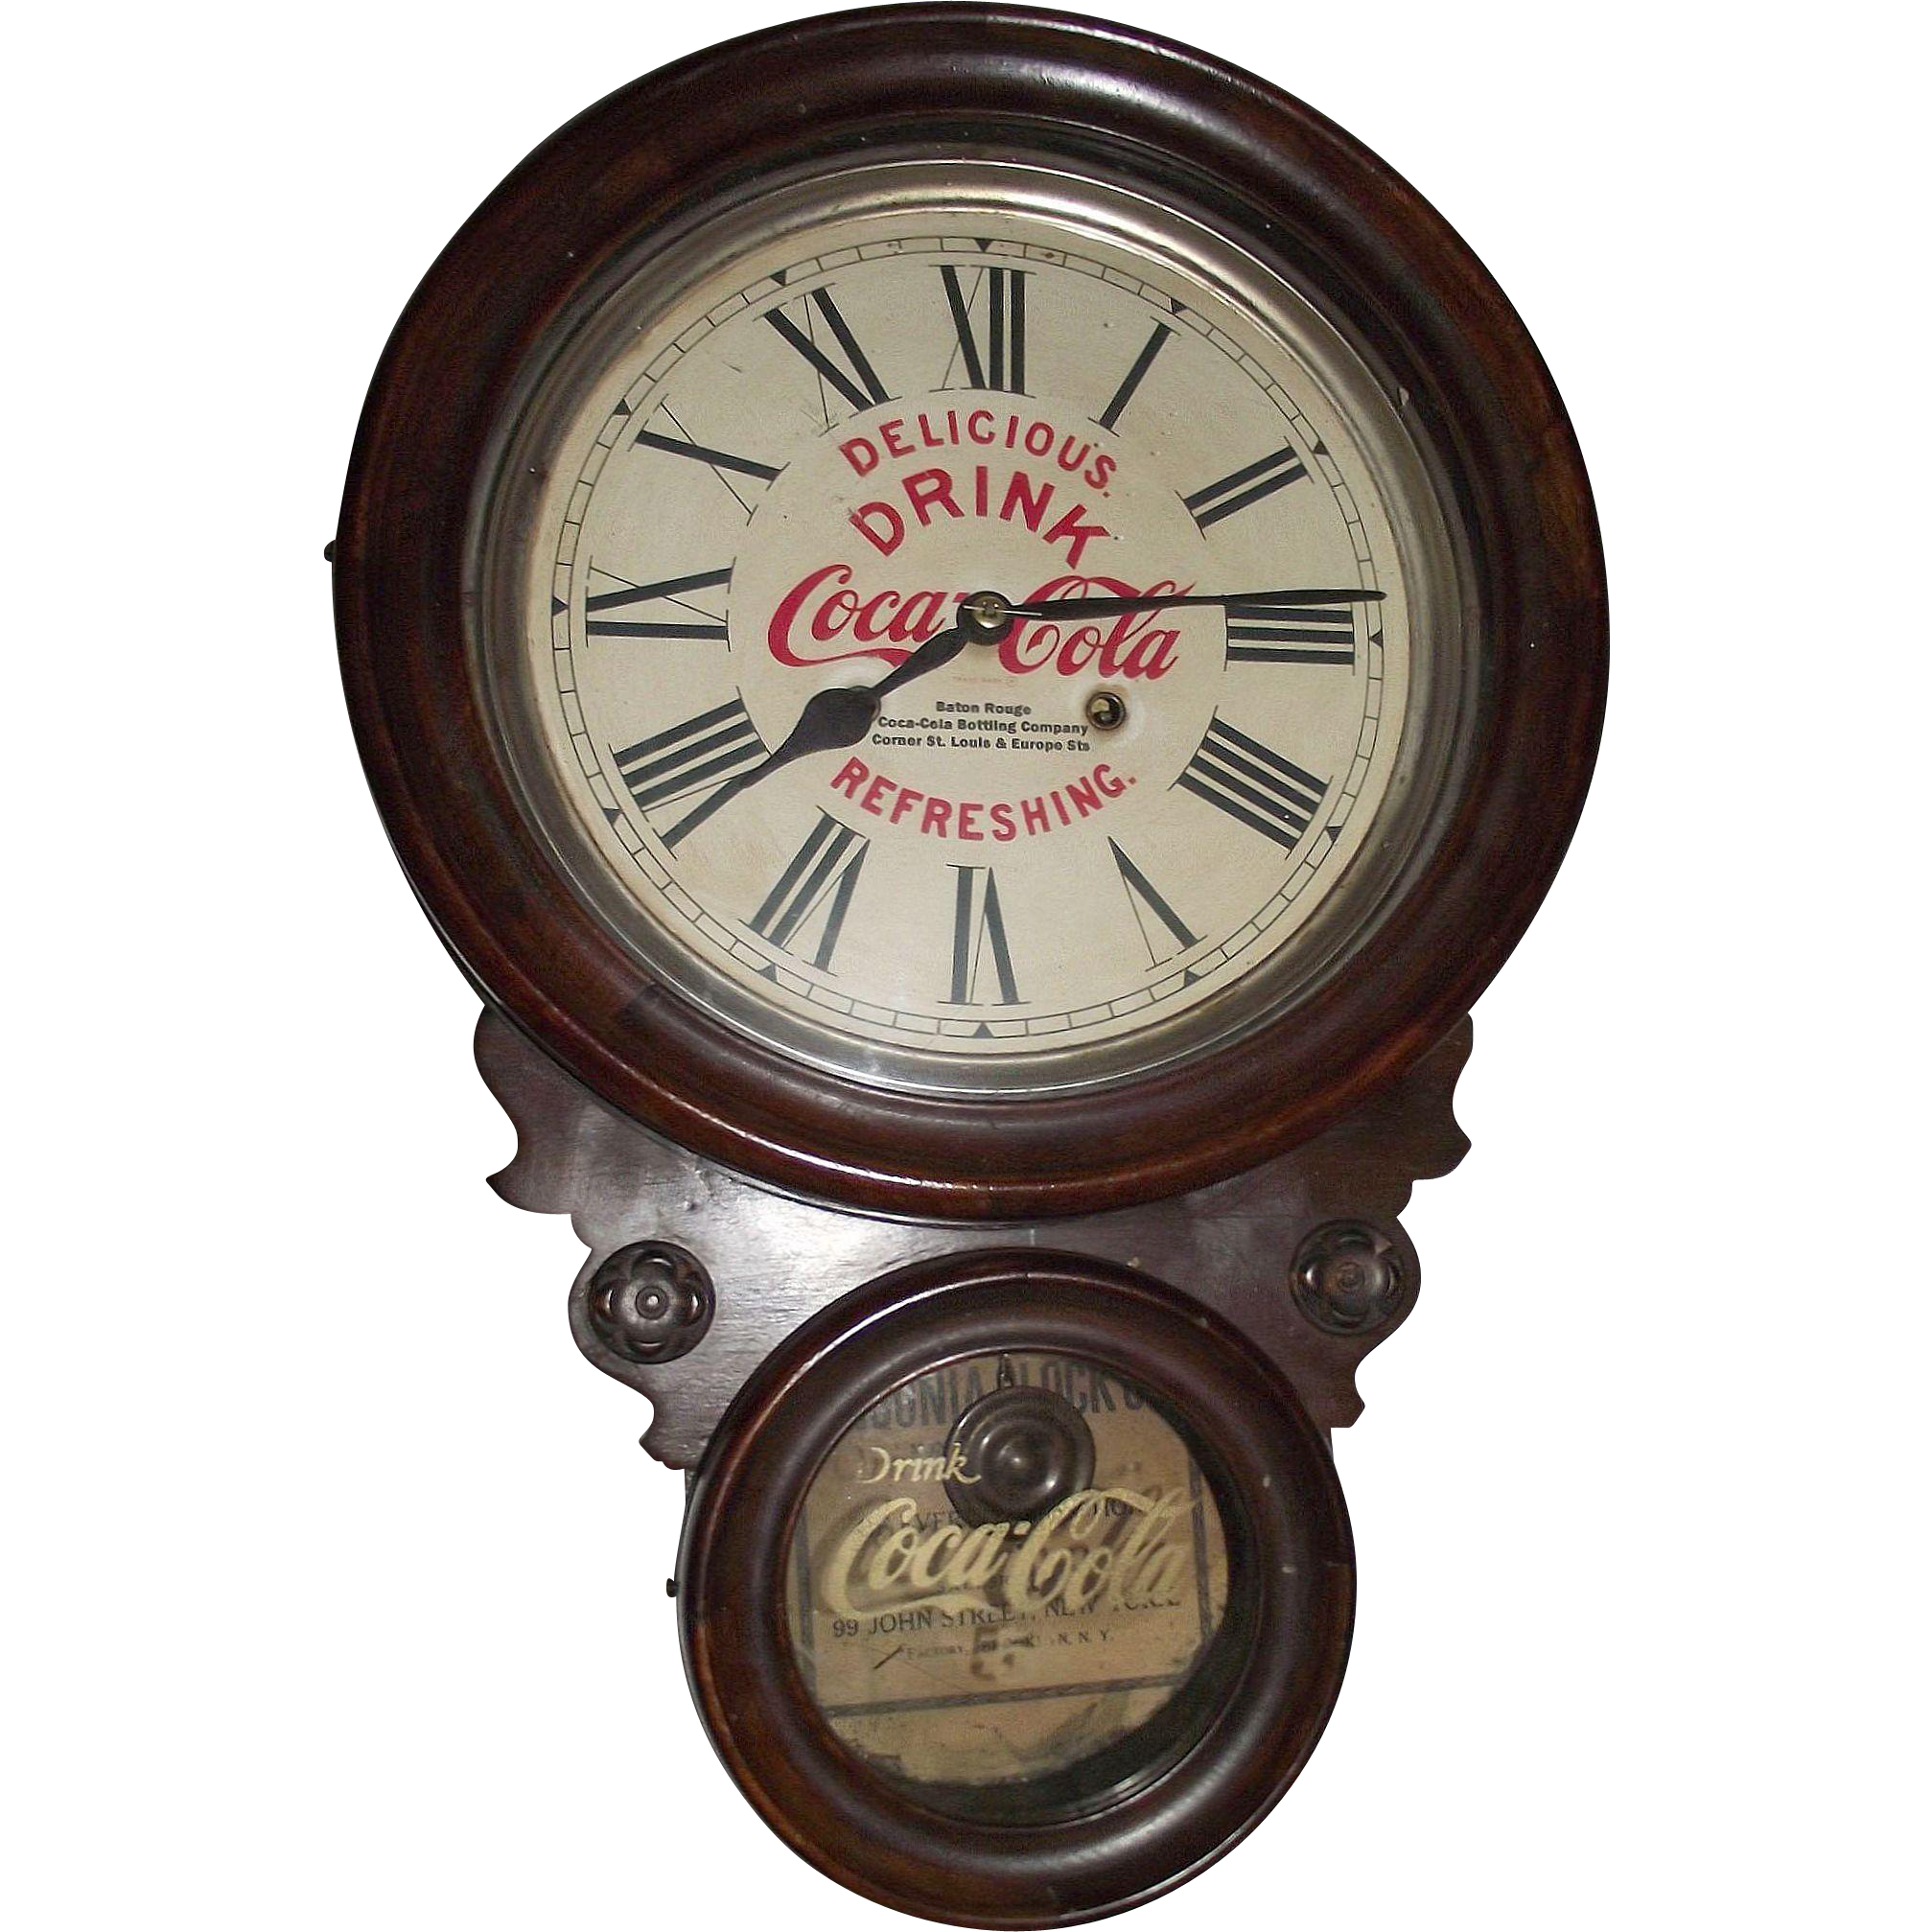 """Rare """"Baton Rouge Coca Cola Bottling Works"""" Advertiser Clock with Hourly Strike in a Figure 8 Case made by Ansonia Clock Co. circa 1906 to 1915 !!!"""